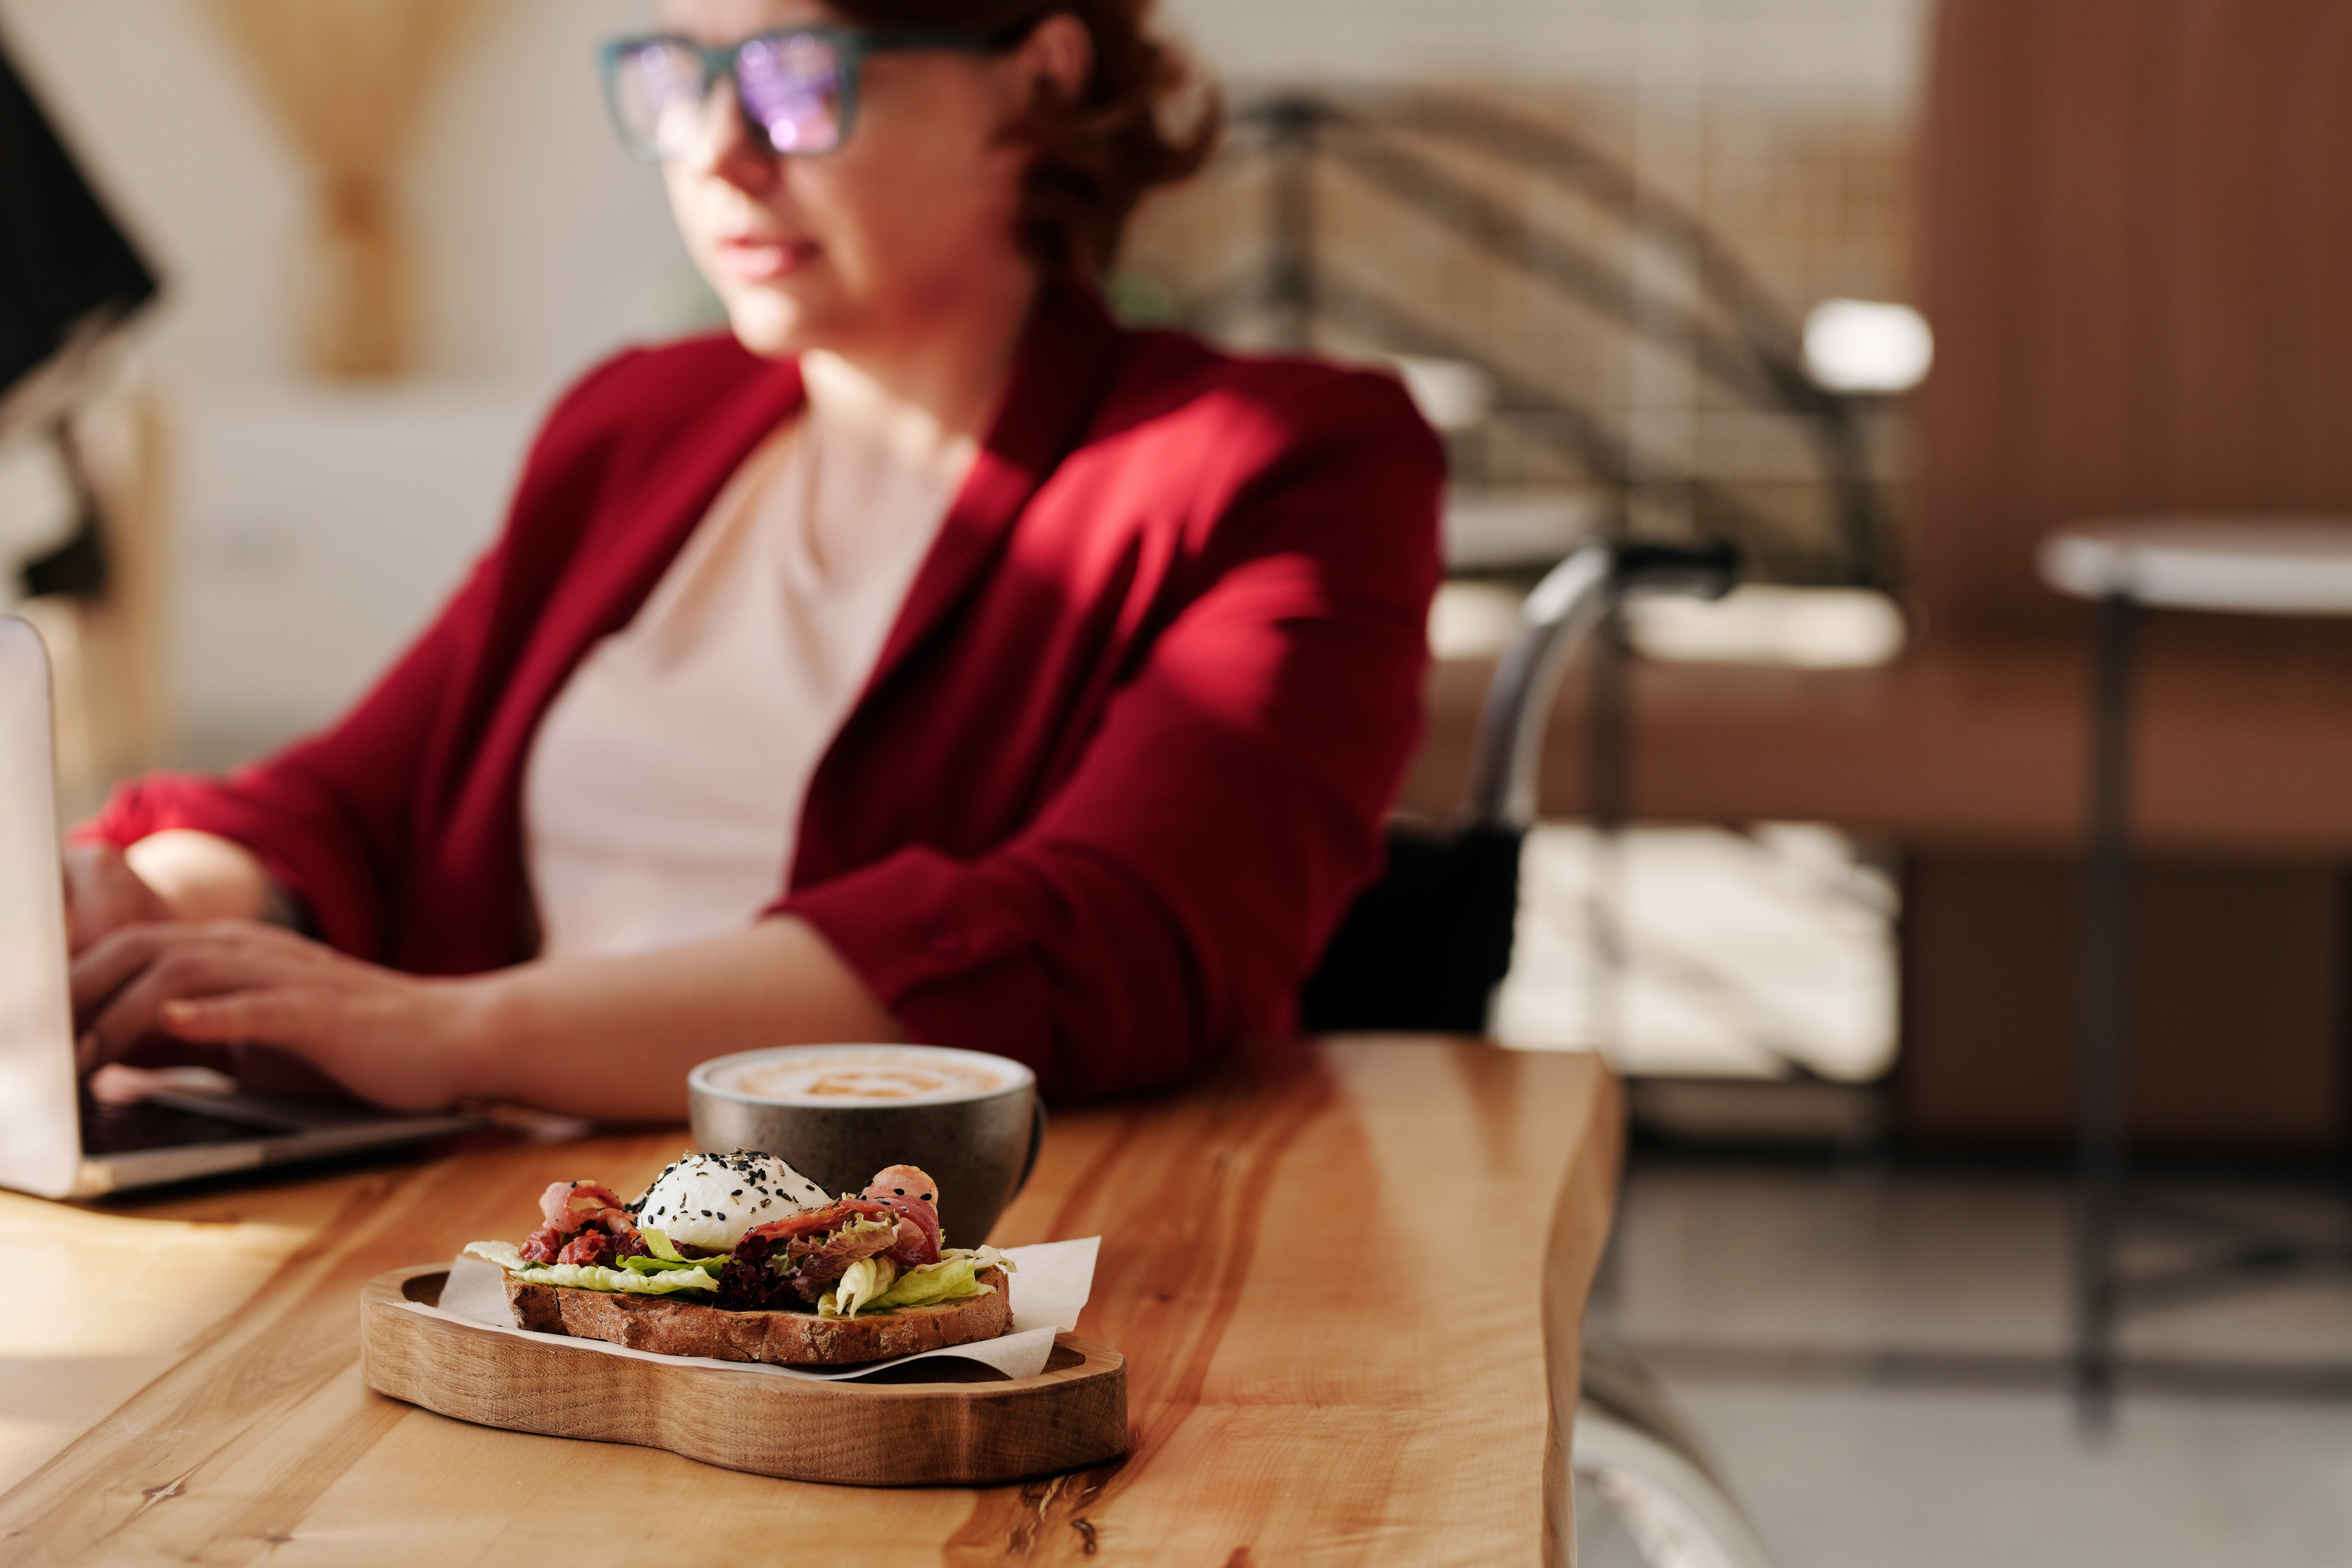 Remote Worker Working From Home with Wurkr and enjoy the perks of increased productivity thanks to Working From Anywhere, ending Zoom Fatigue and Eating Well.